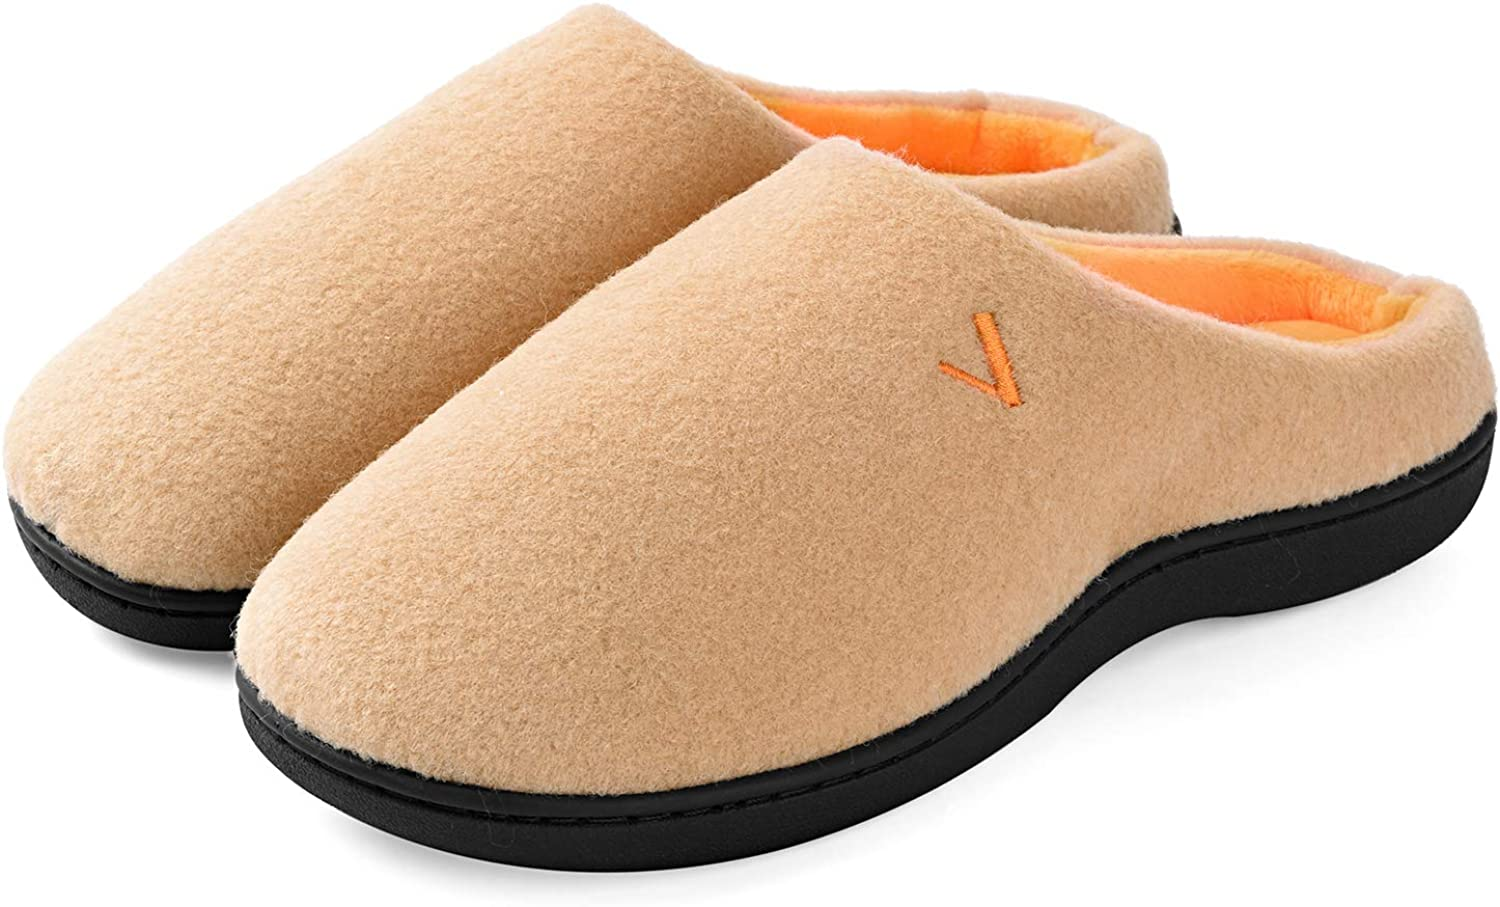 Slippers Slip On House Shoes